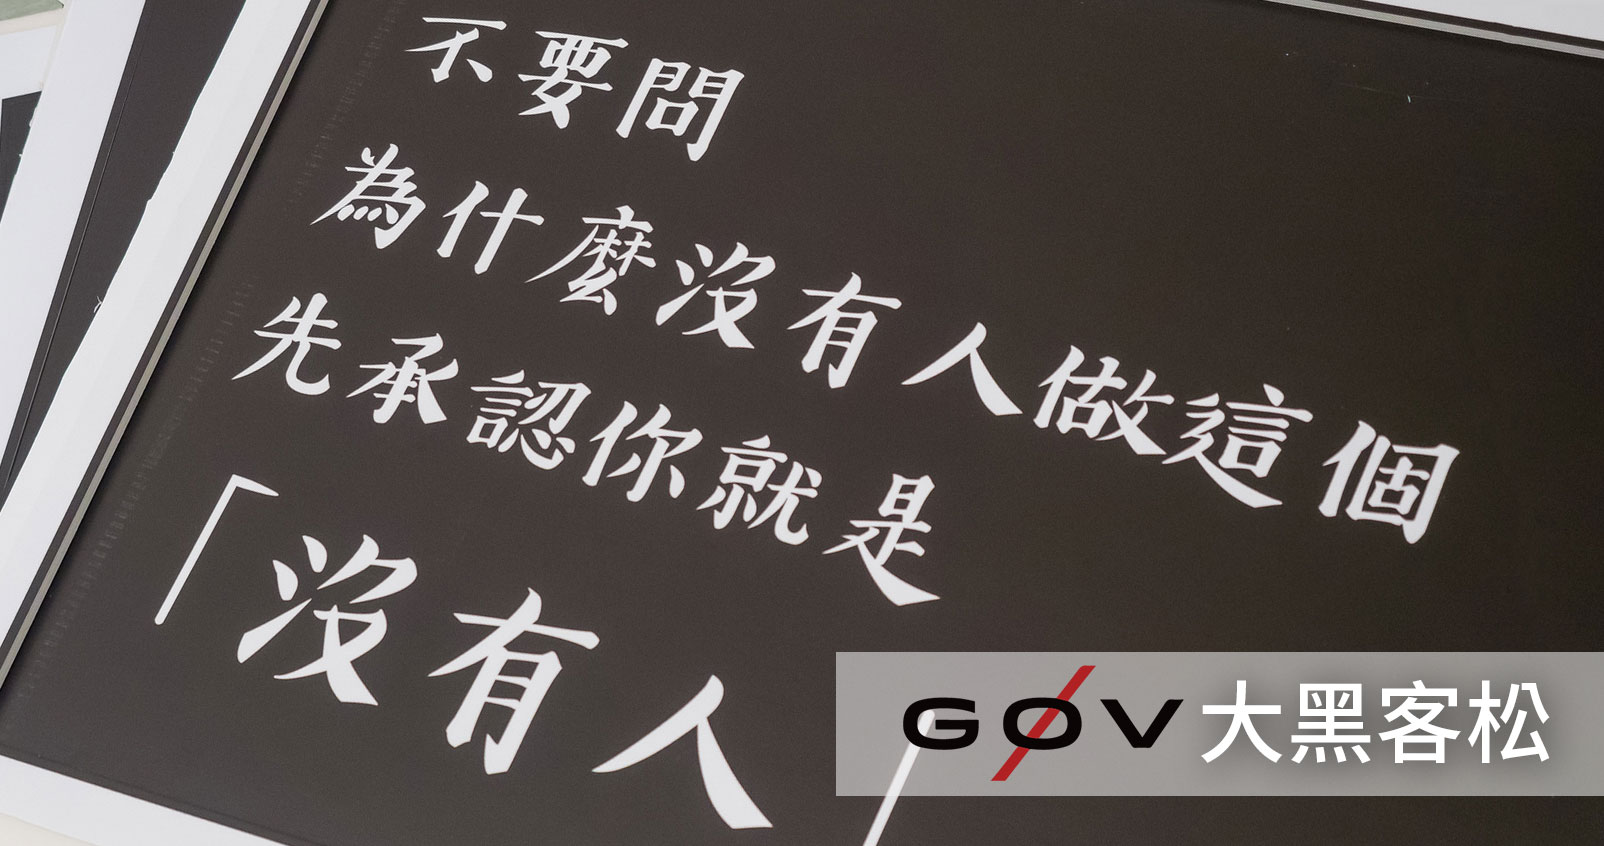 Cover image for '【社群專案】g0v 雙月定期大黑客松'